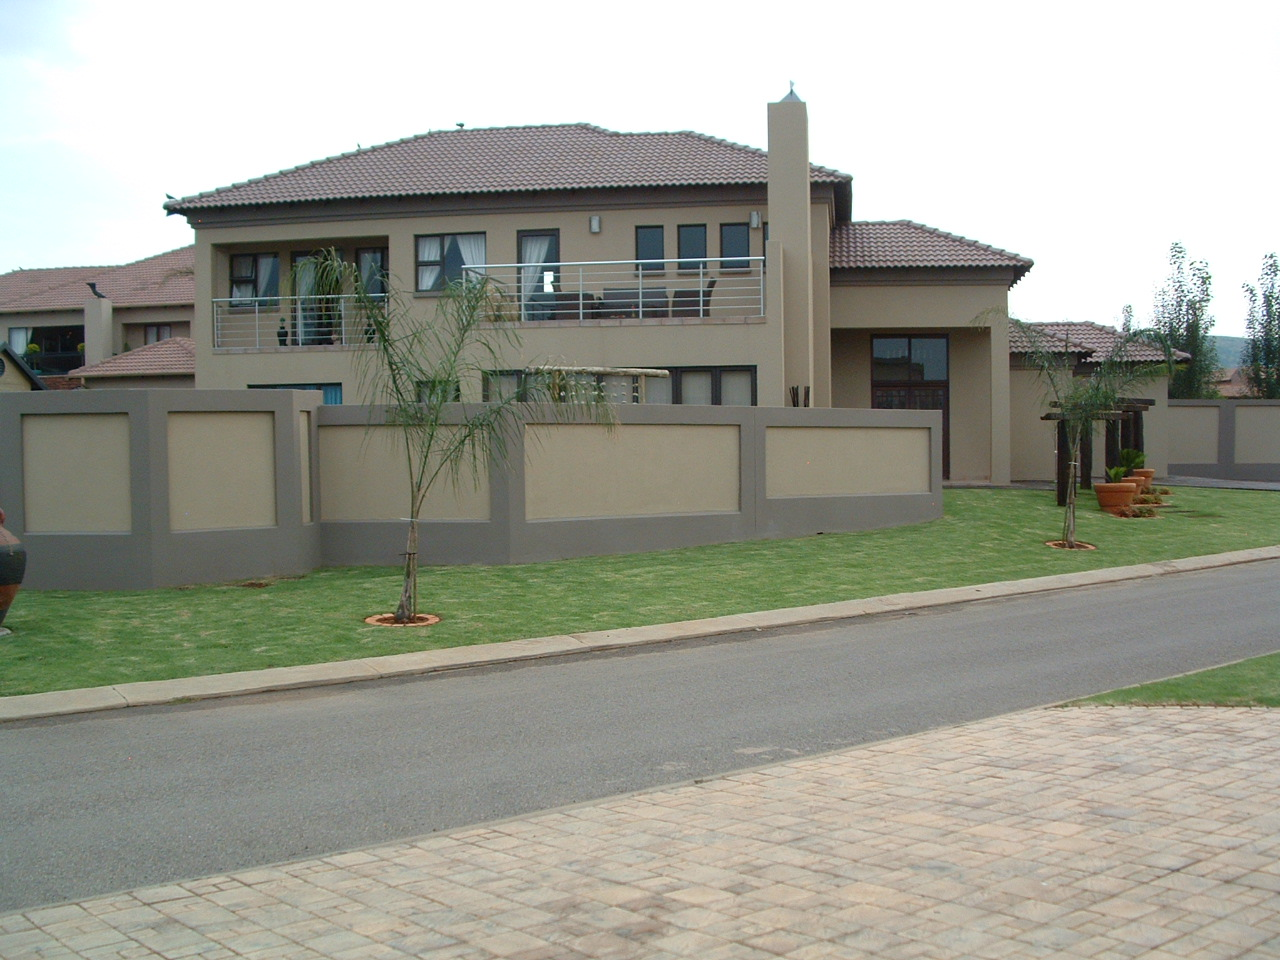 Modern house plans in gauteng modern house Houseplans com